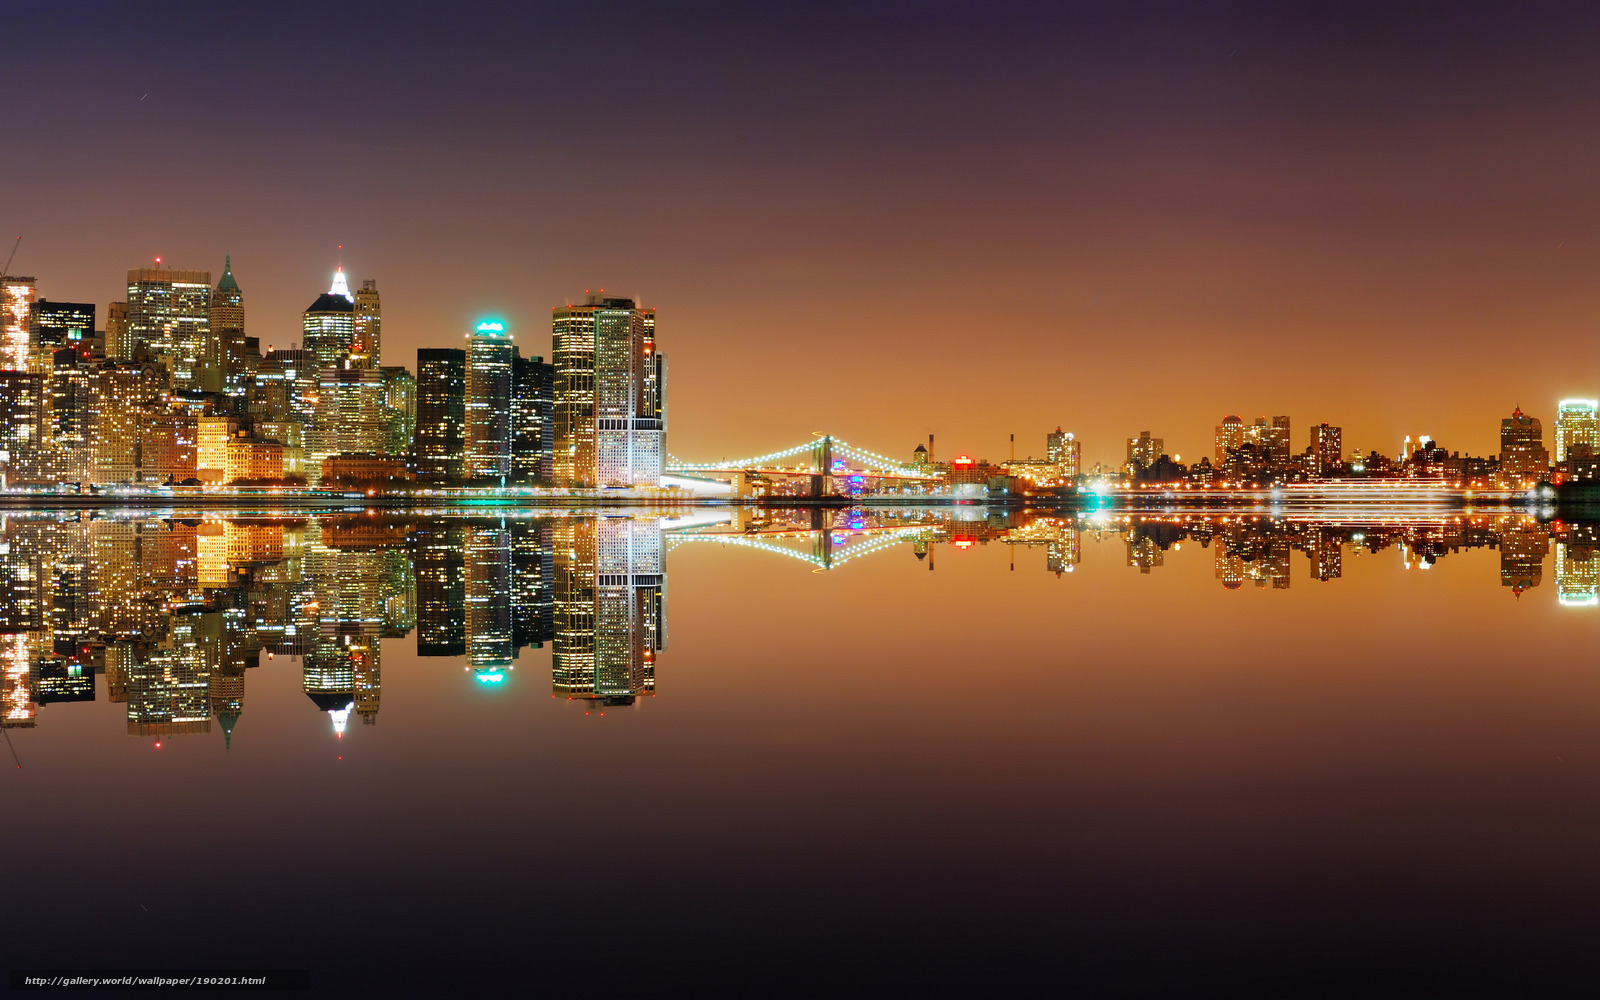 Download Wallpaper City New York America Place Free